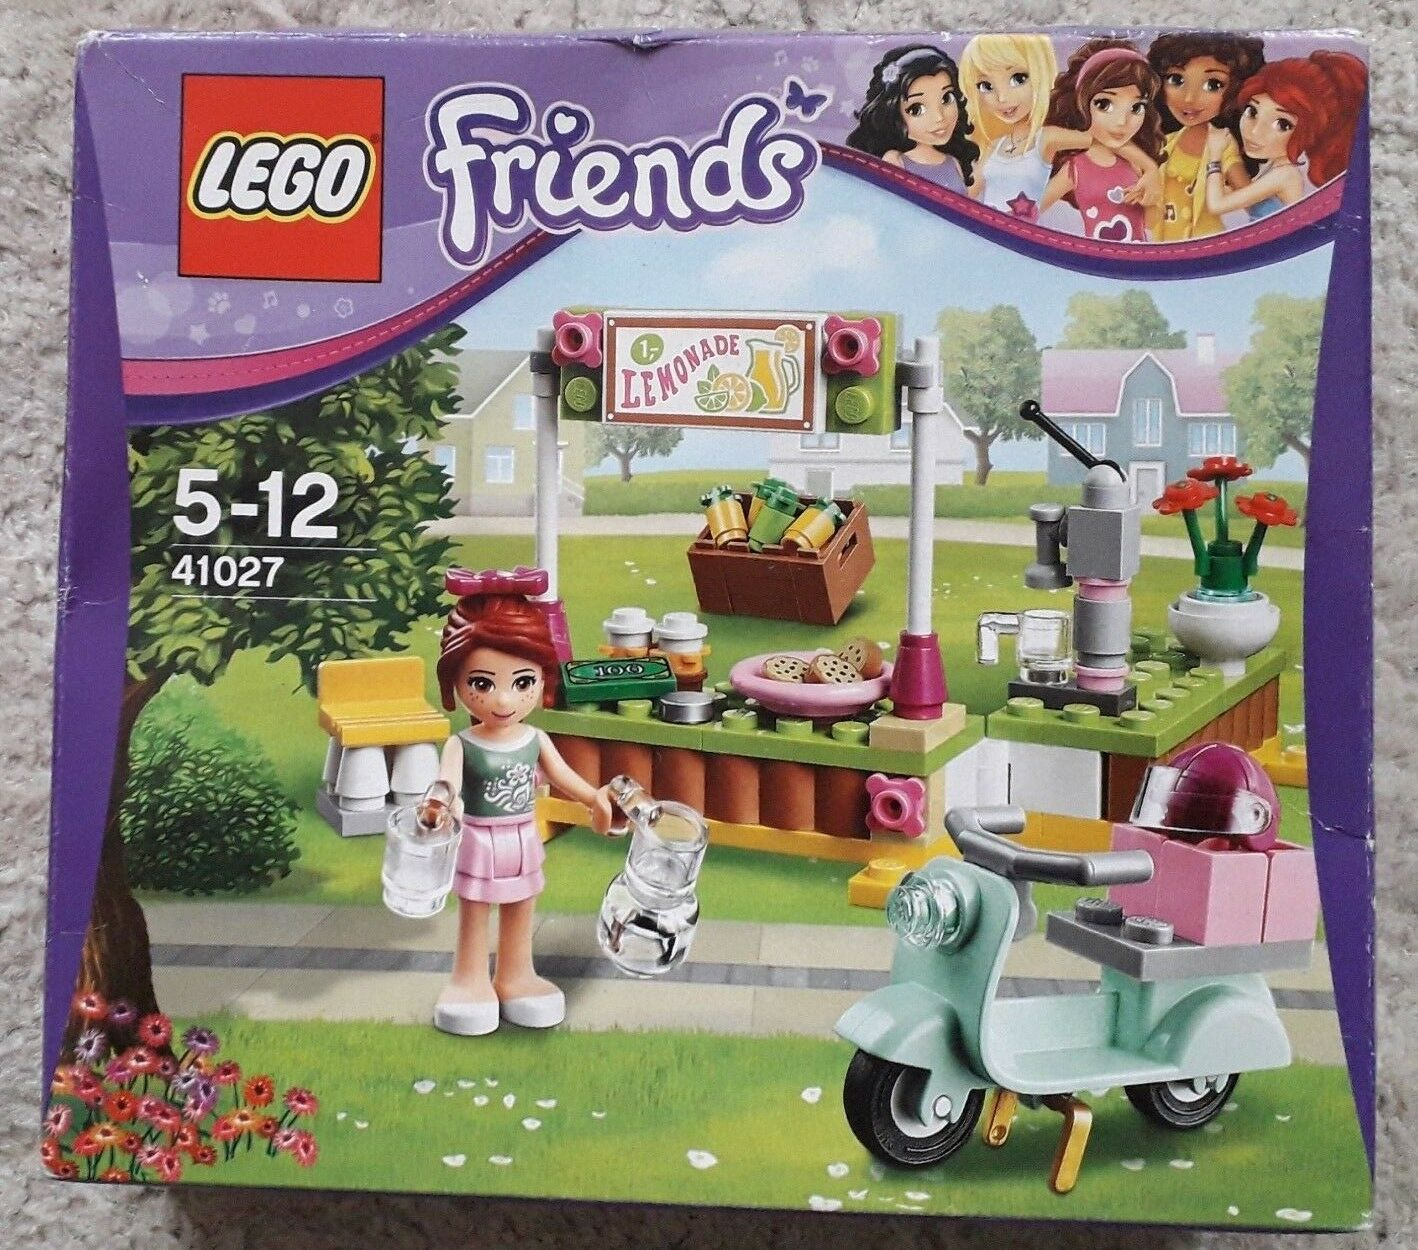 LEGO Friends Mia's Lemonade Stand  41027  Brand New In Sealed Box